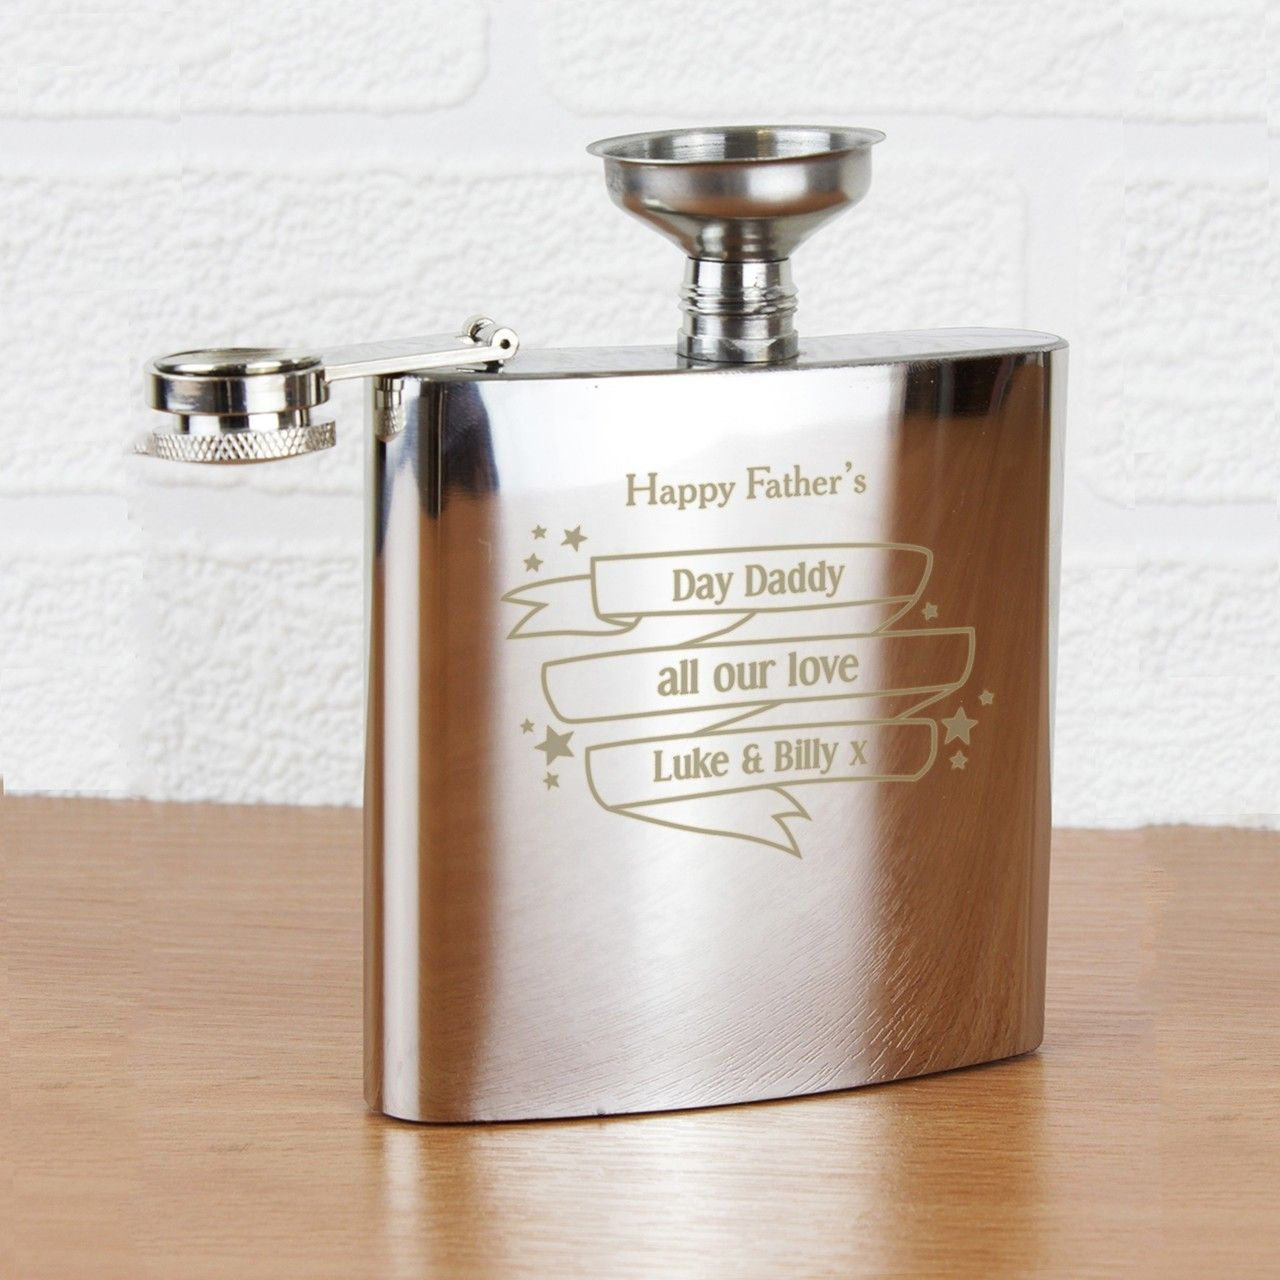 Personalise this Shining Star hip flask with any message over 4 lines and up to 15 characters per line. Including spaces and punctuation.  Personalisation will appear as entered, if you require it to be in UPPER CASE, please enter in this style.  Steel is the material for an 11th Wedding Anniversary and this Hipflask would make the perfect gift!  This Hip Flask comes presented in a gift box.  The material of this product is stainless steel.